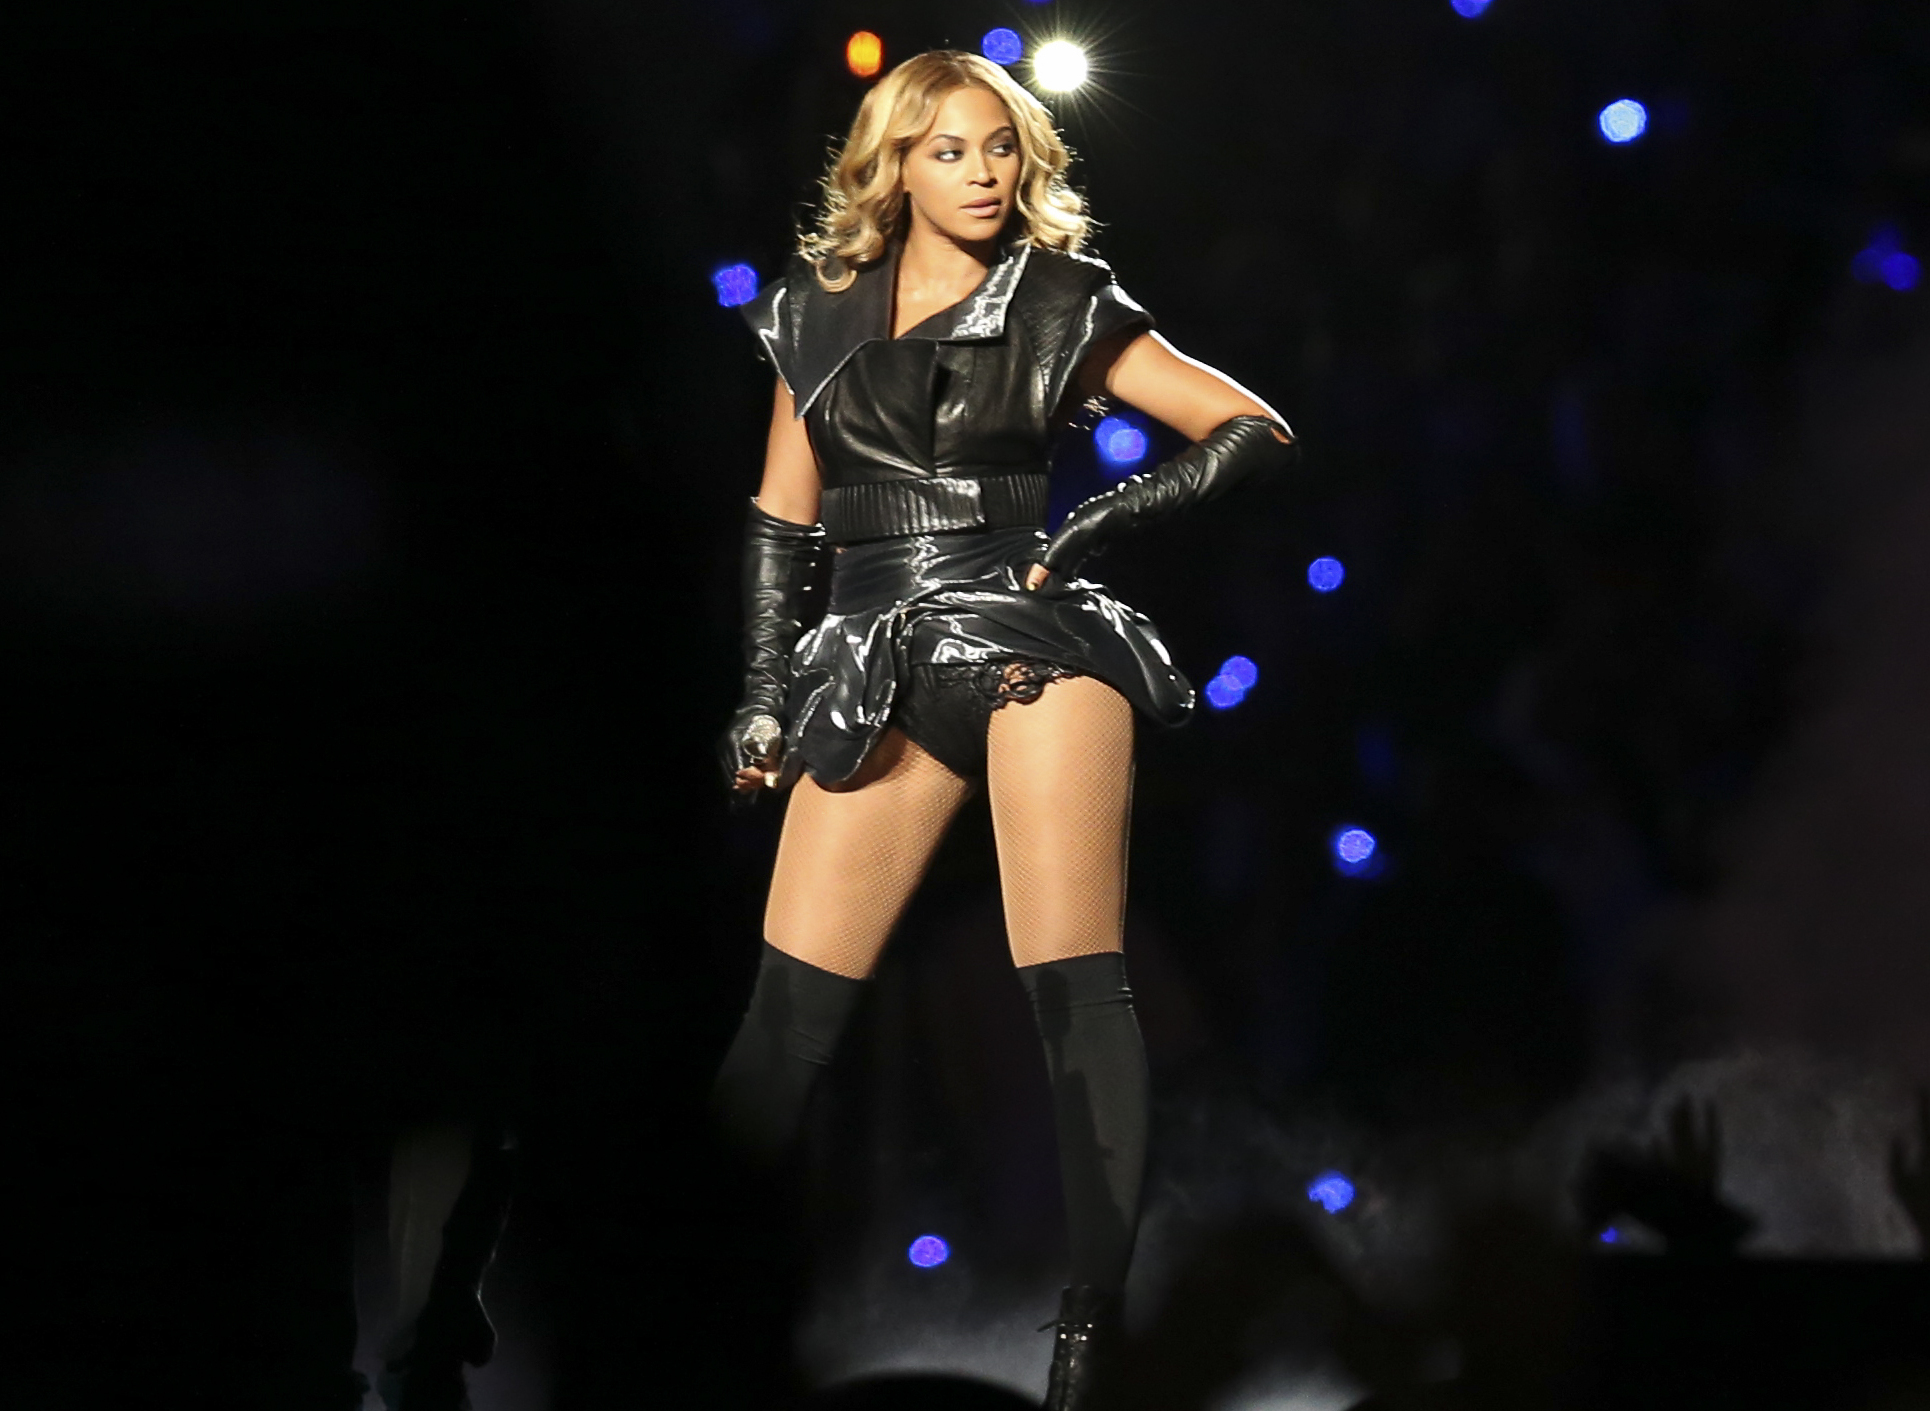 File:Beyoncé at Super Bowl XLVII halftime show (5).jpg - Wikimedia Commons